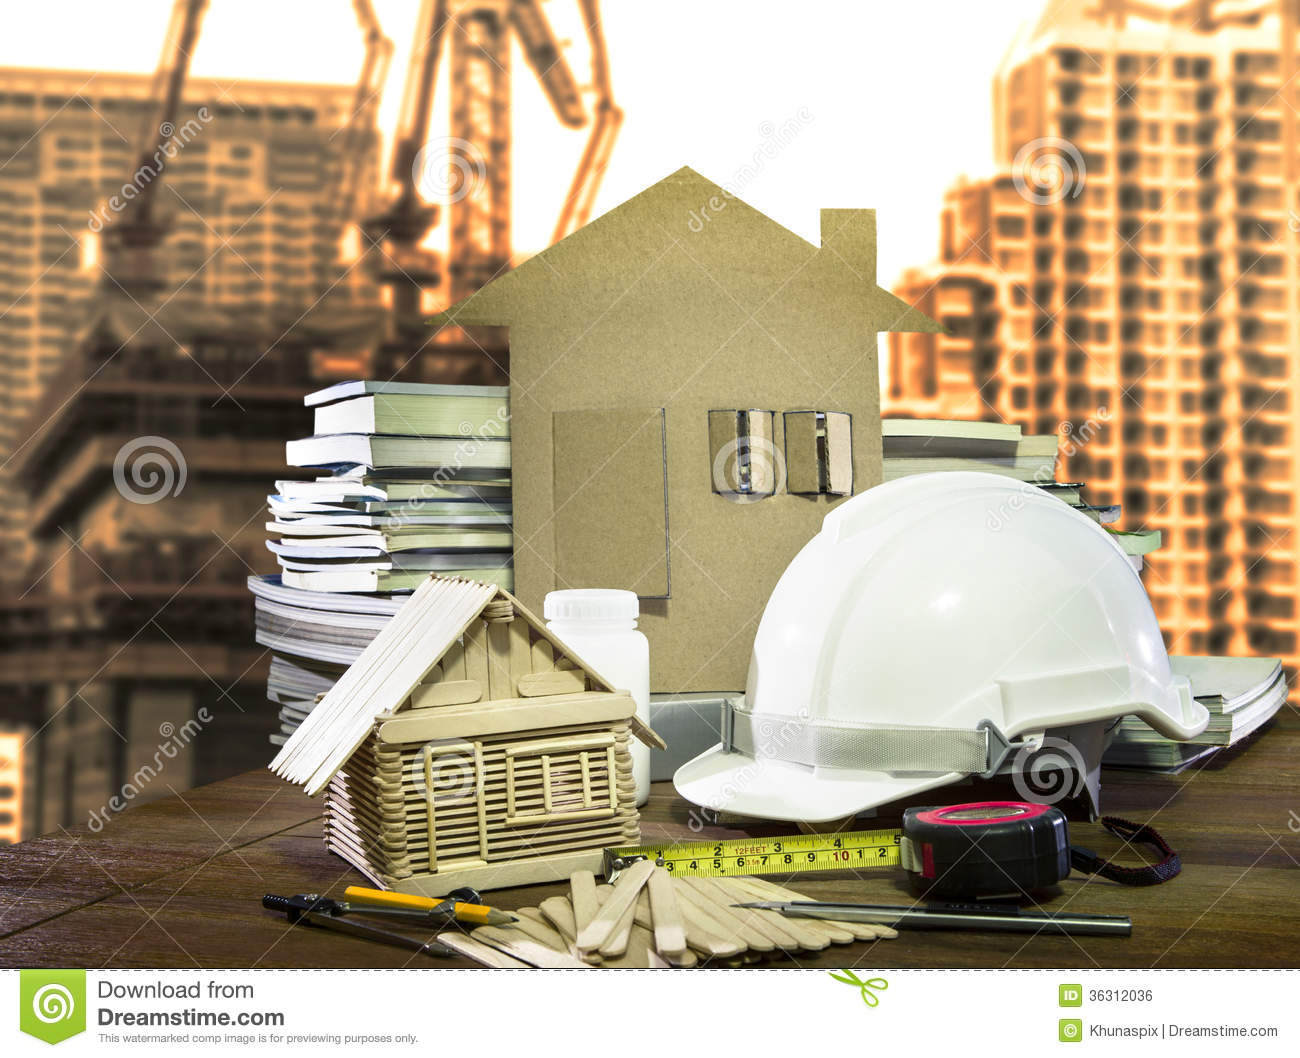 tools used in building construction pdf